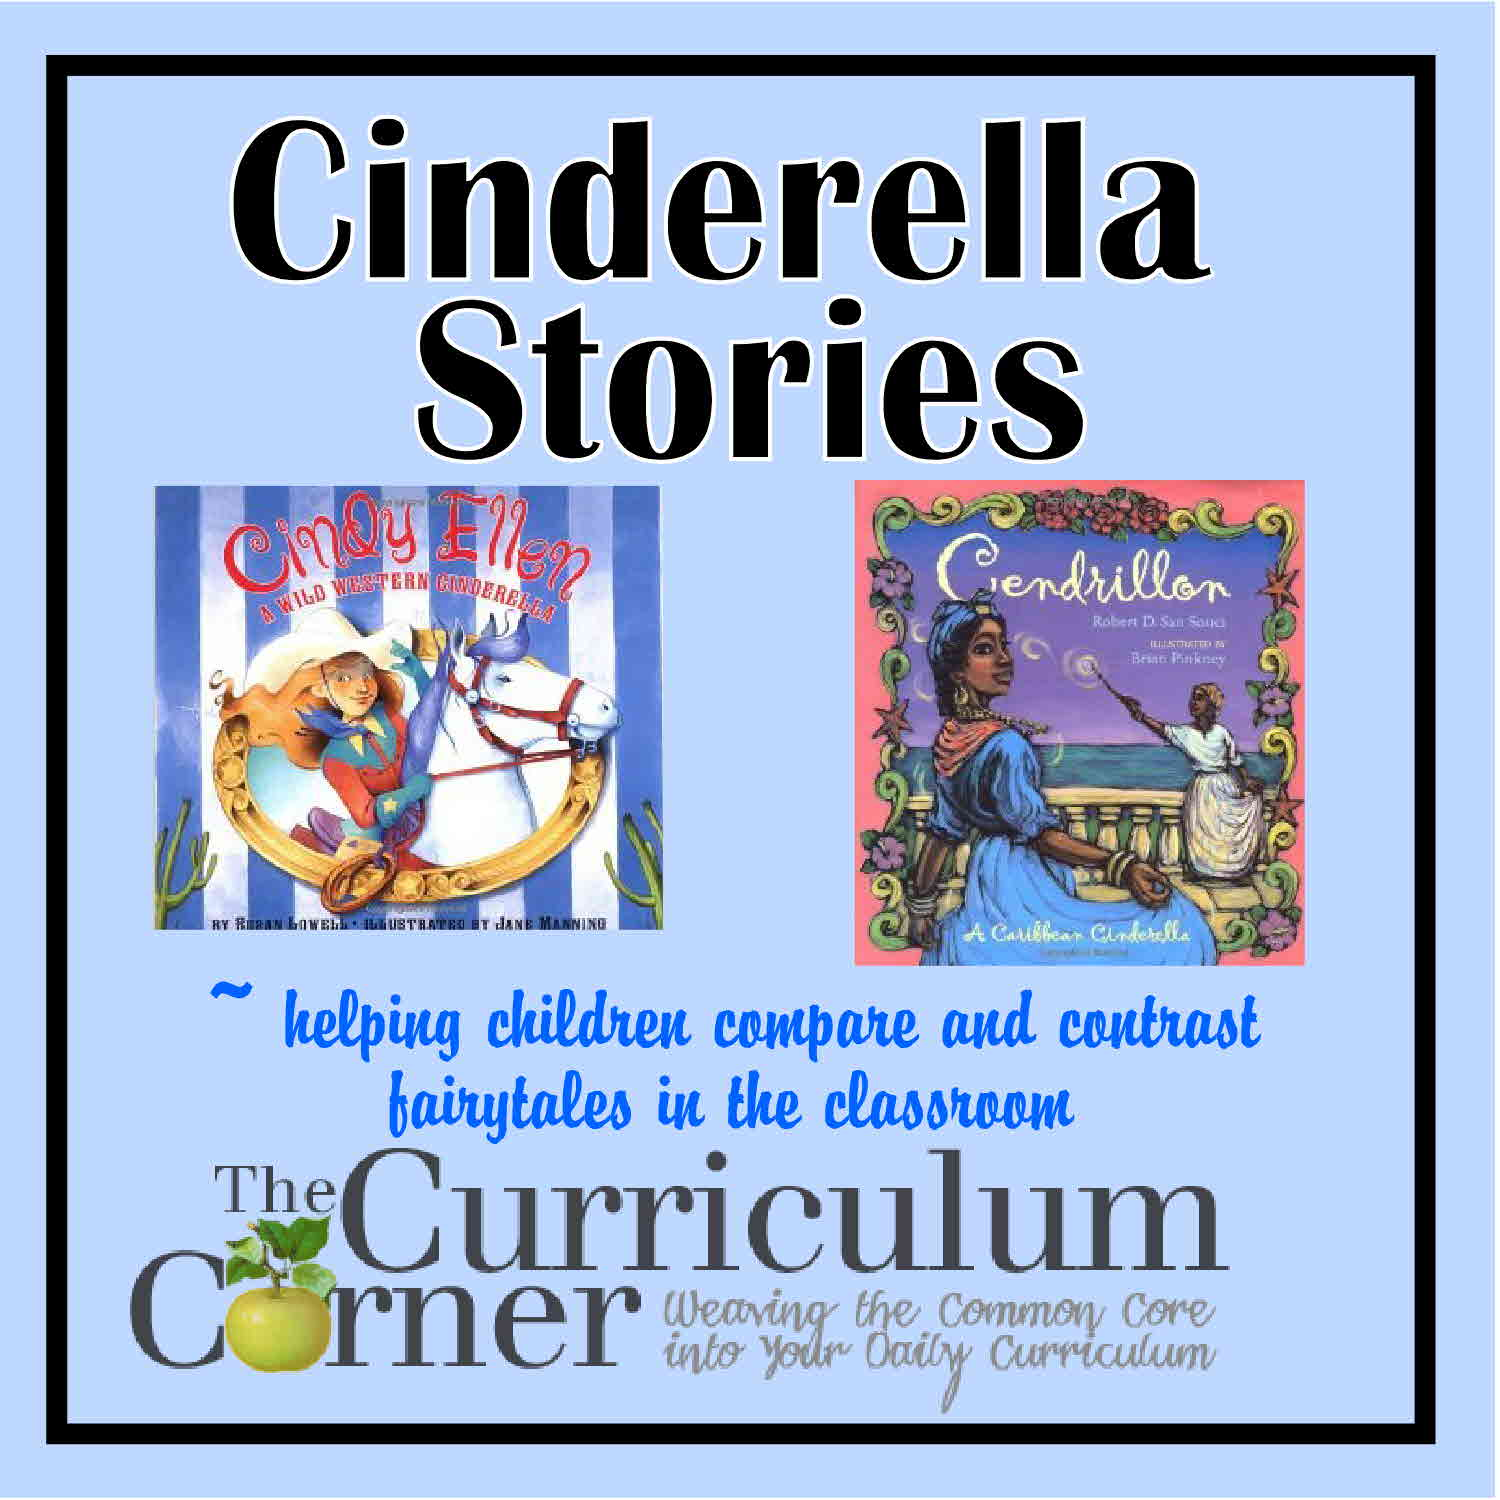 comparing and contrast cinderella Fairy tales: comparing and contrasting fairy tales are made up stories written for children that usually include magic of some sort you have probably heard of many fairy tales: cinderella, beauty and the beast, the three little pigs, snow white, etc children love to hear these stories again and again.